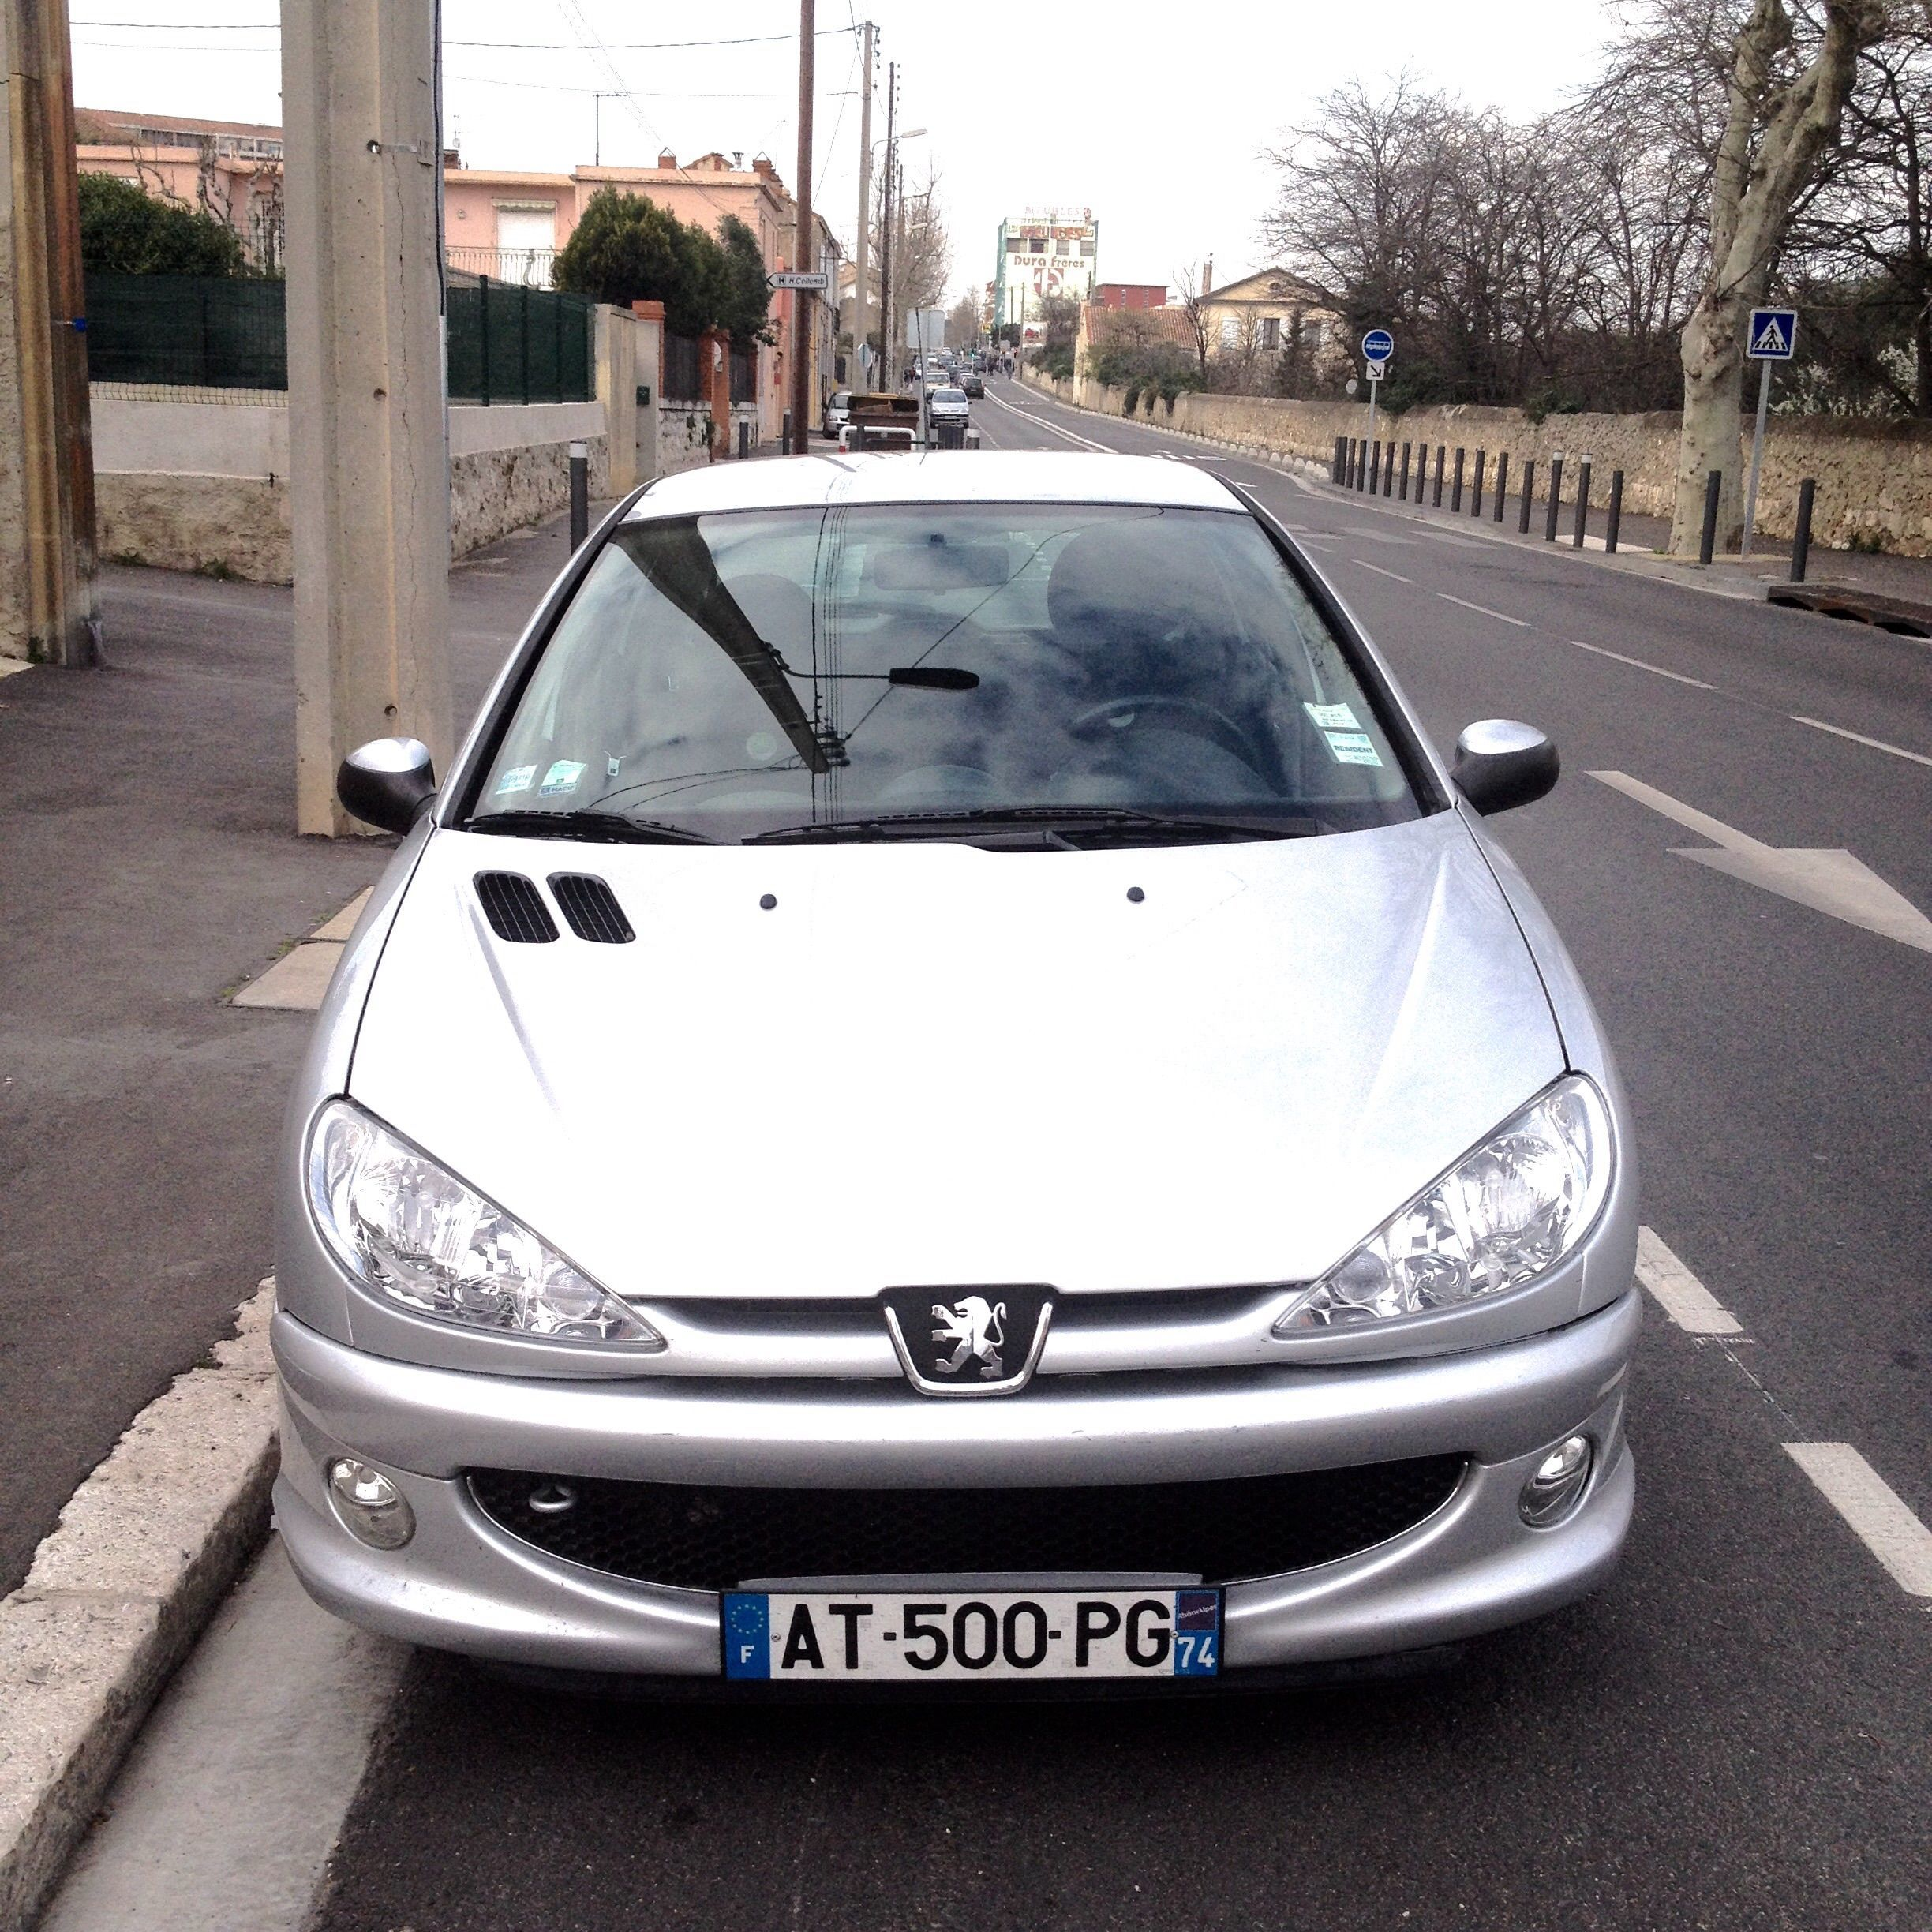 location voiture marseille peugeot  hdi portes gare st charles